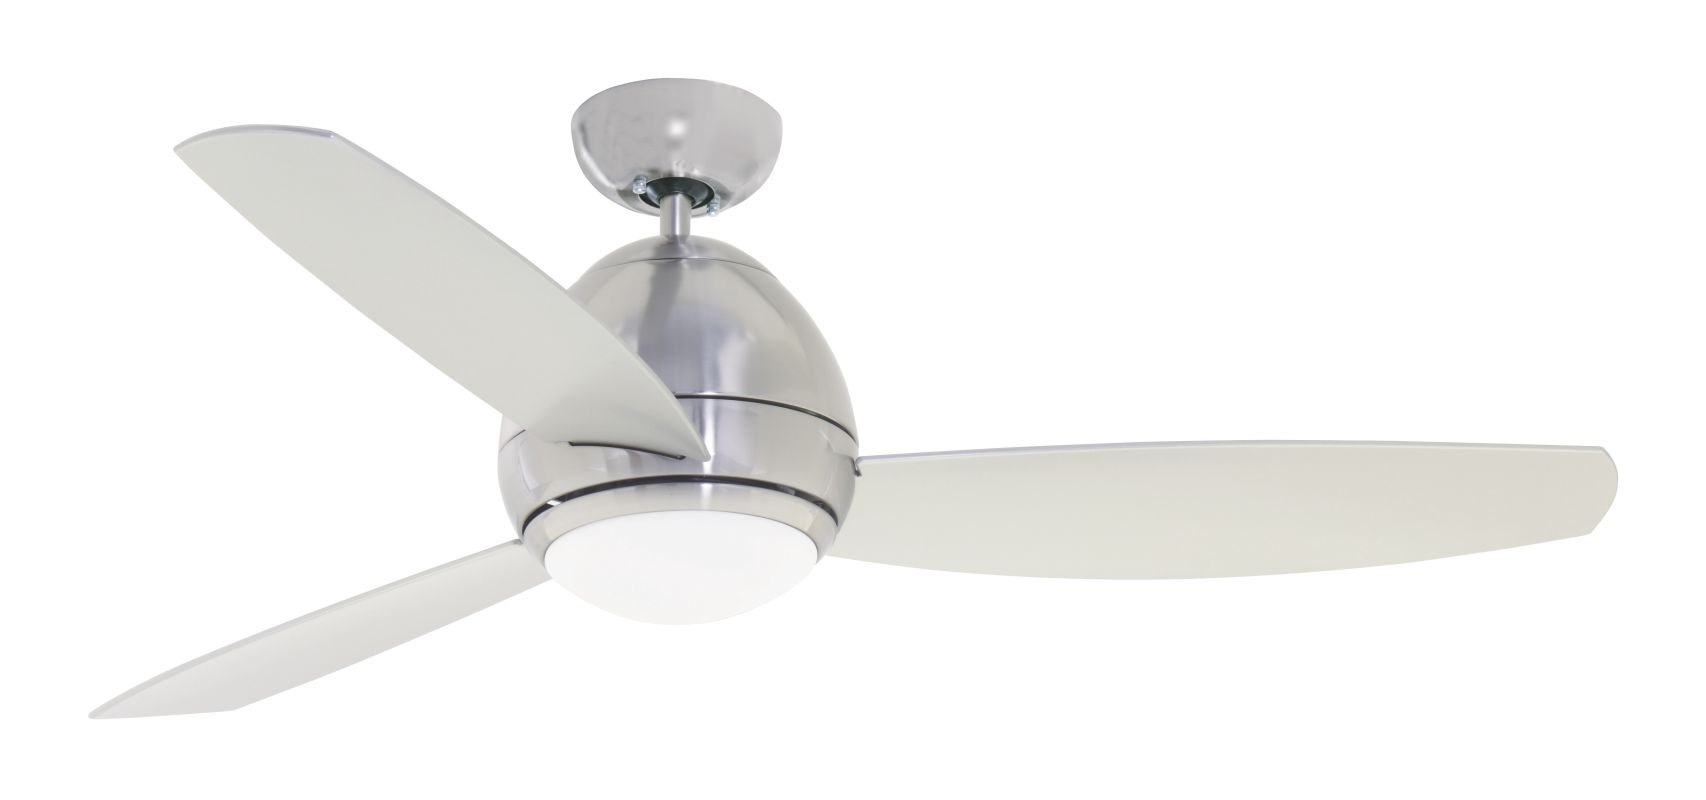 "Emerson CF252 Curva 52"" 3 Blade Ceiling Fan - Blades and Light Kit"